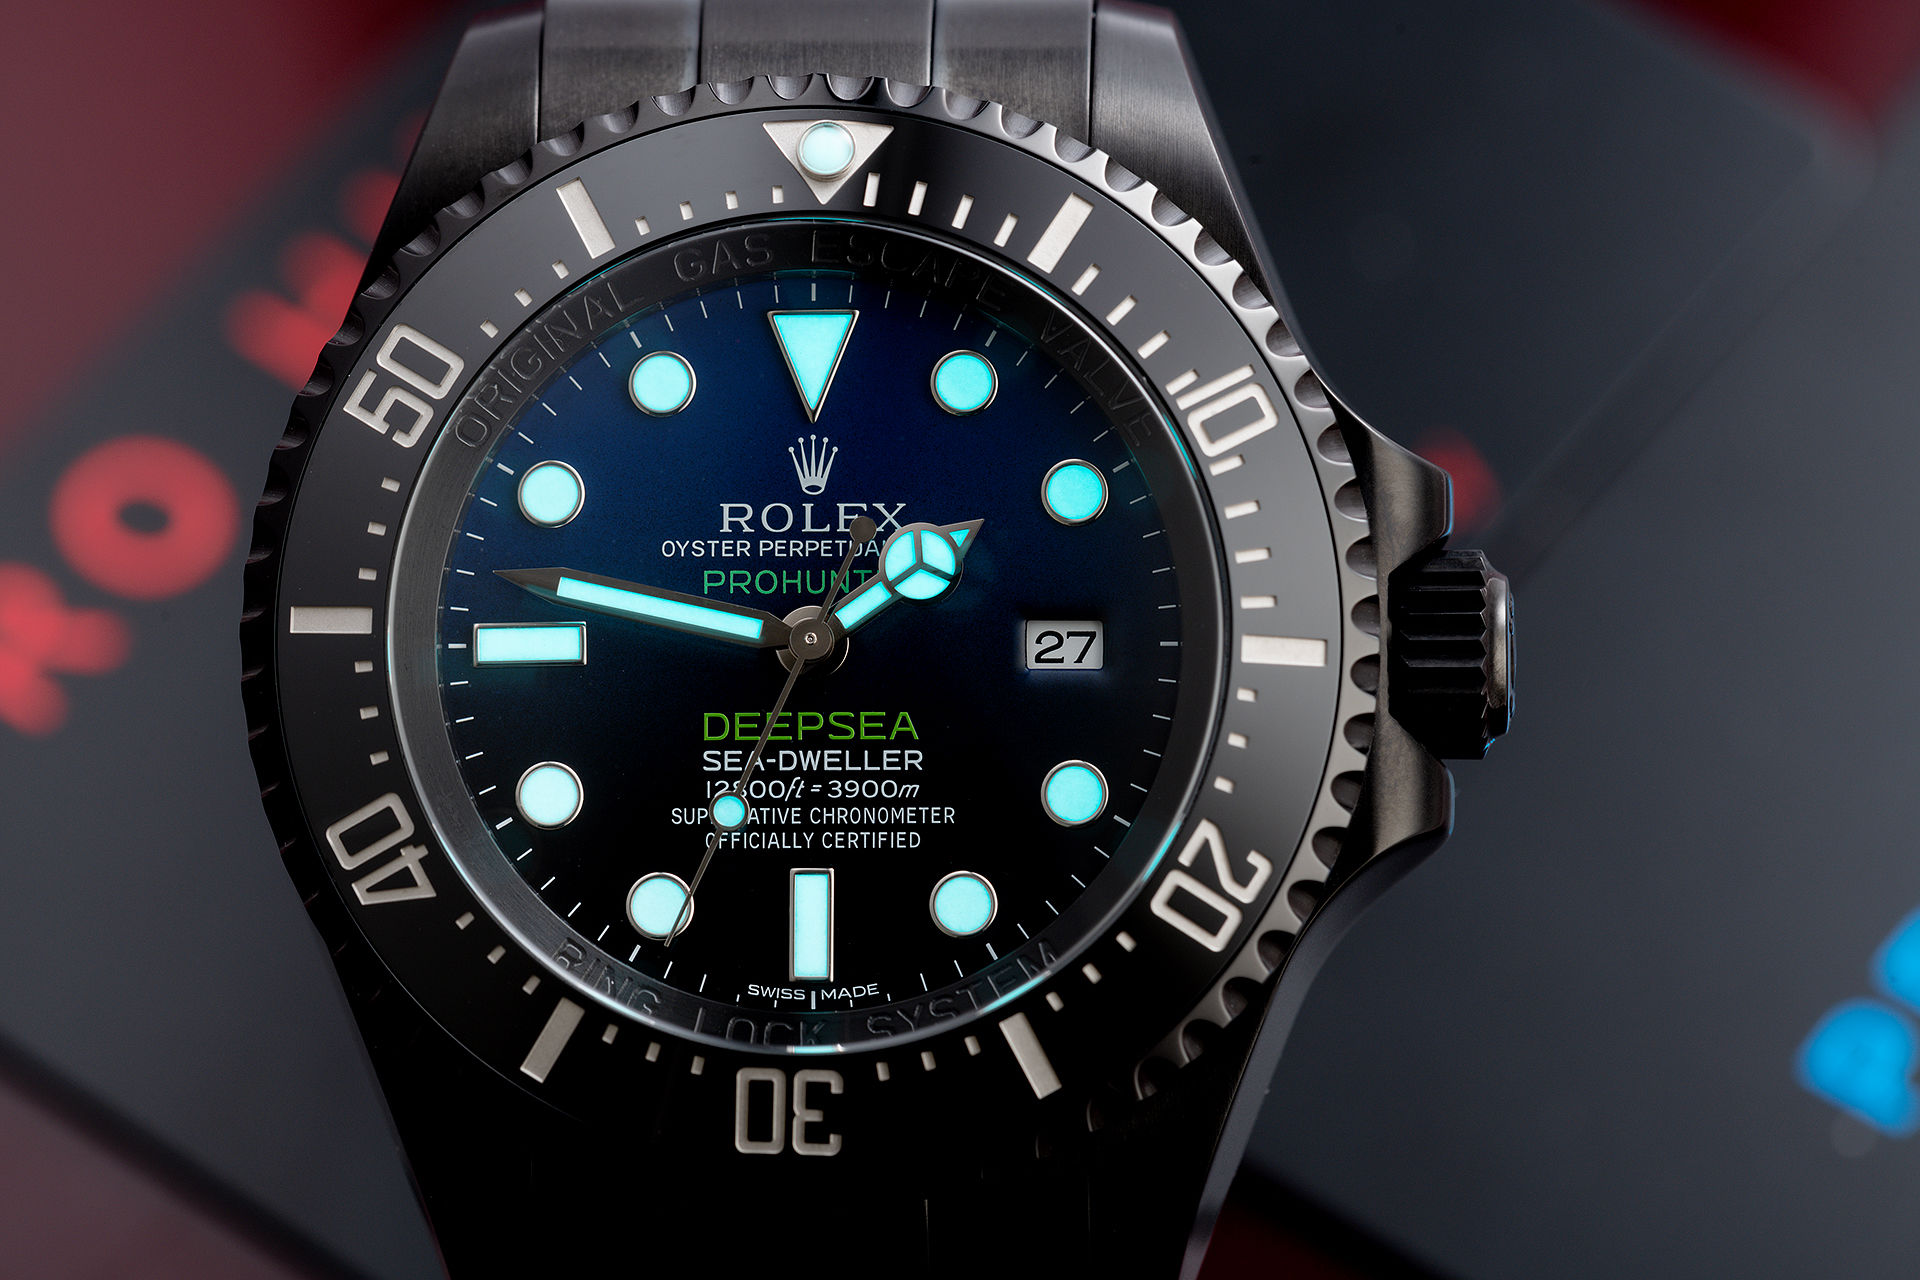 ref 116660  | Limited Edition 'One of 100' | Pro Hunter Sea-Dweller Deepsea D-Blue